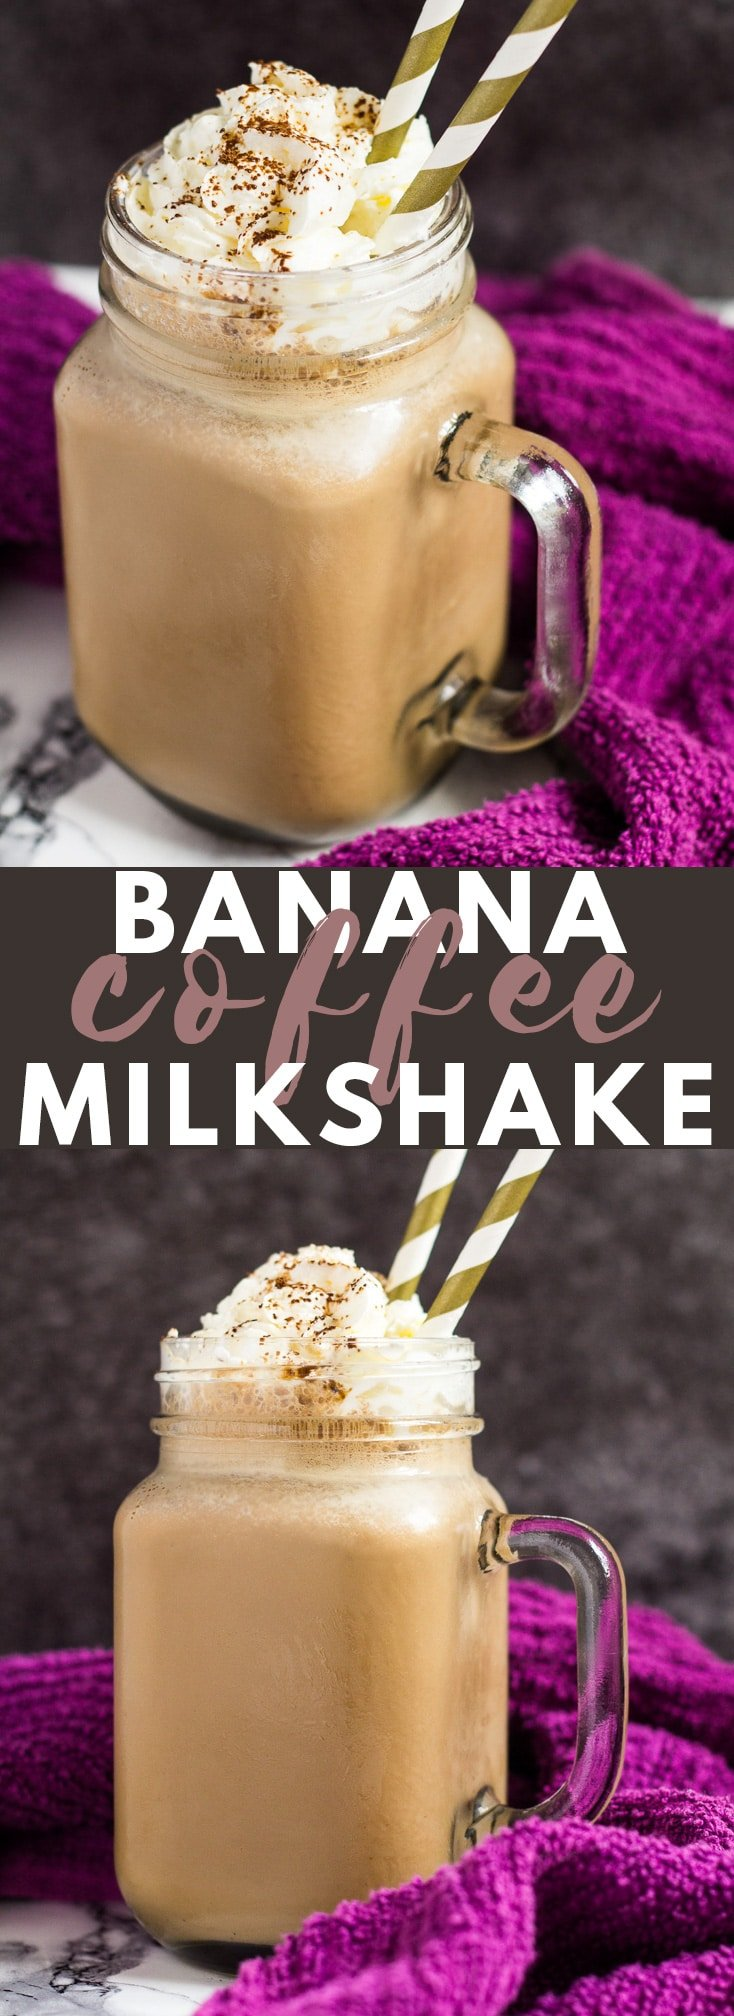 Banana Coffee Milkshake - Wonderfully creamy banana milkshake that is infused with coffee. An indulgent drink for coffee lovers! #banana #coffee #milkshake #recipe